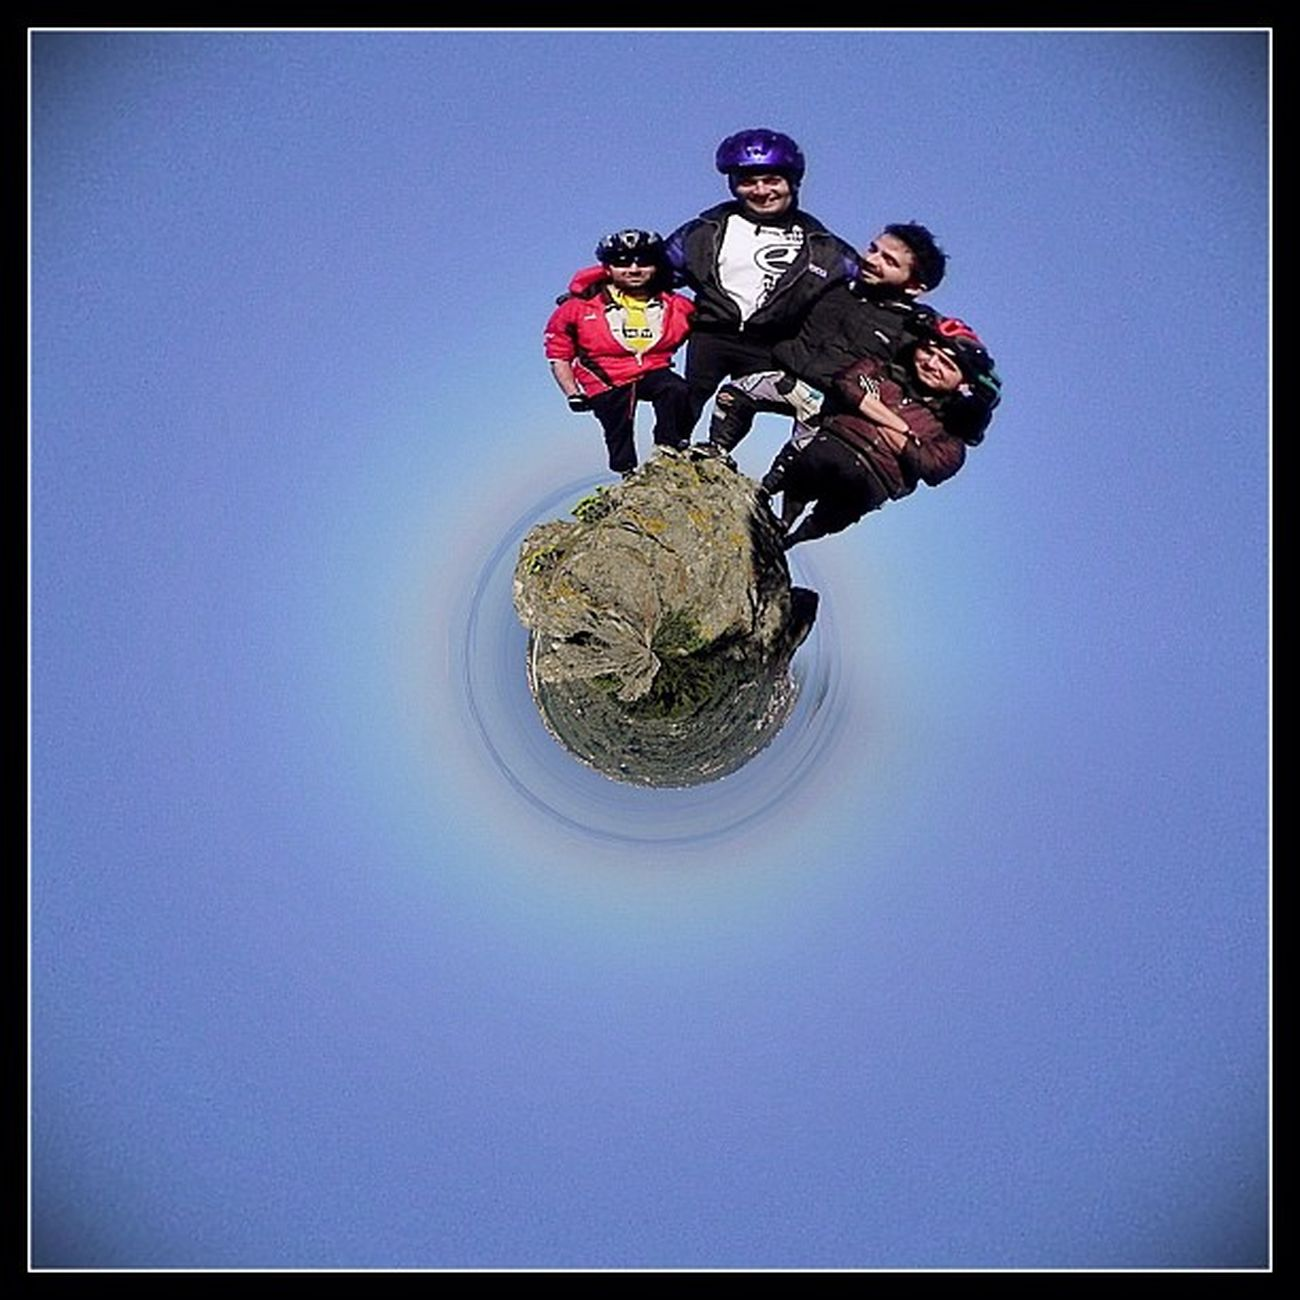 Our planet! Friends IPhone IPhoneography Greece Photooftheday MTB Igers Photoday Tinyplanet Editoftheday Ubiquography Instalovers_gr